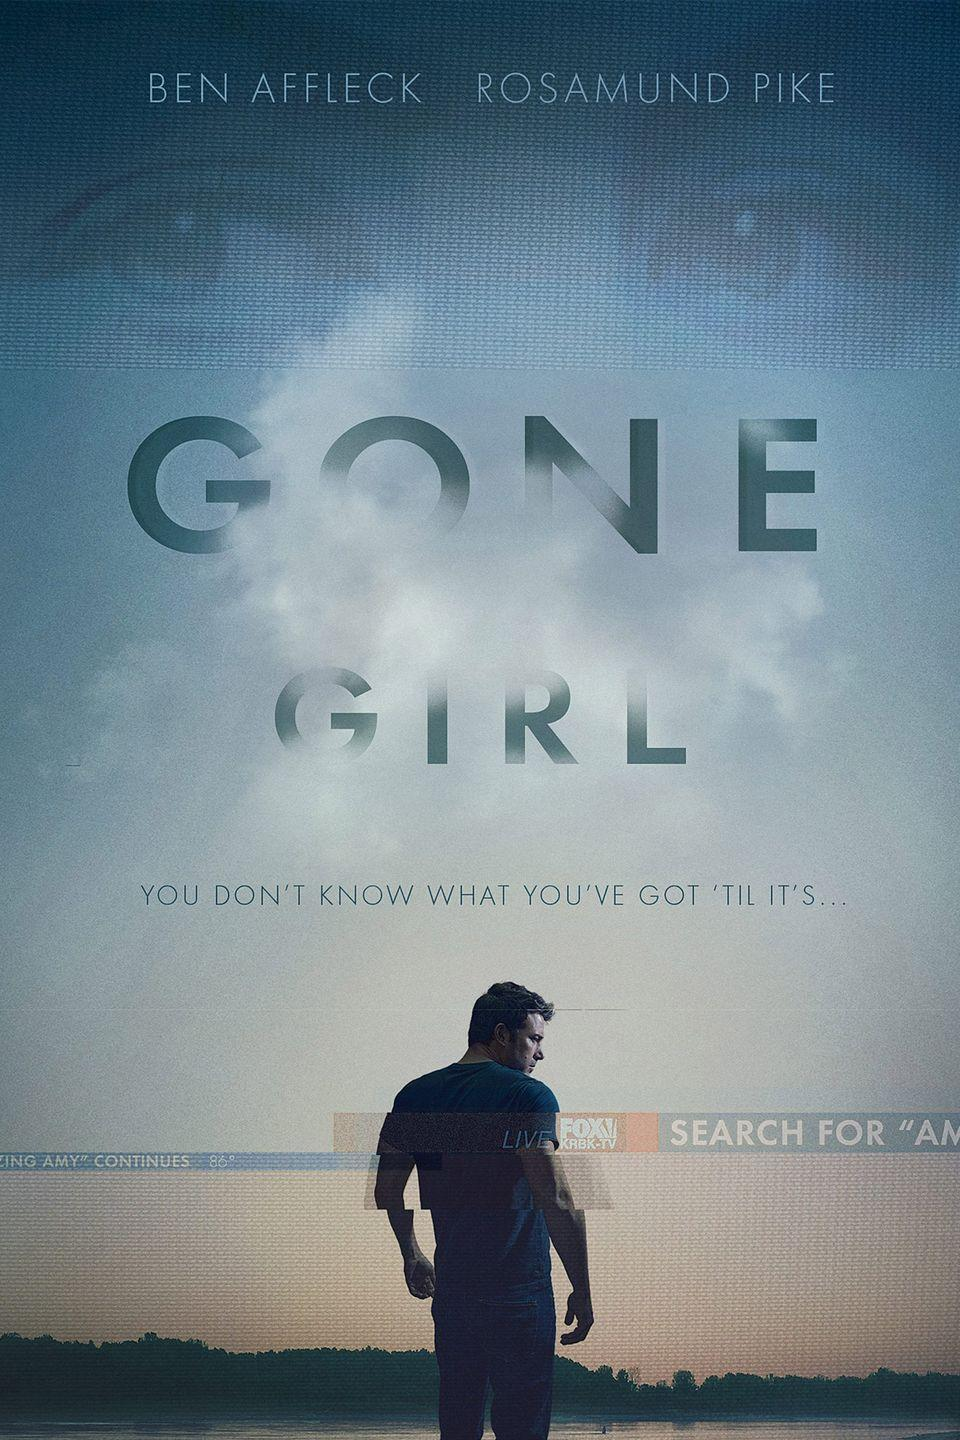 """<p>Anyone else walk into the movie theater to see <em>Gone Girl</em> and have no idea they'd leave the experience knowing what Ben Affleck <a href=""""https://www.redbookmag.com/love-sex/sex/g19700772/best-nude-movie-scenes/"""" rel=""""nofollow noopener"""" target=""""_blank"""" data-ylk=""""slk:looked like naked"""" class=""""link rapid-noclick-resp"""">looked like naked</a>? Same. But here we are. This full-frontal moment happened in a shower scene and is quite memorable.</p><p><a class=""""link rapid-noclick-resp"""" href=""""https://www.amazon.com/Gone-Girl-Ben-Affleck/dp/B00S65TBHY?tag=syn-yahoo-20&ascsubtag=%5Bartid%7C10063.g.22564723%5Bsrc%7Cyahoo-us"""" rel=""""nofollow noopener"""" target=""""_blank"""" data-ylk=""""slk:STREAM NOW"""">STREAM NOW</a></p>"""